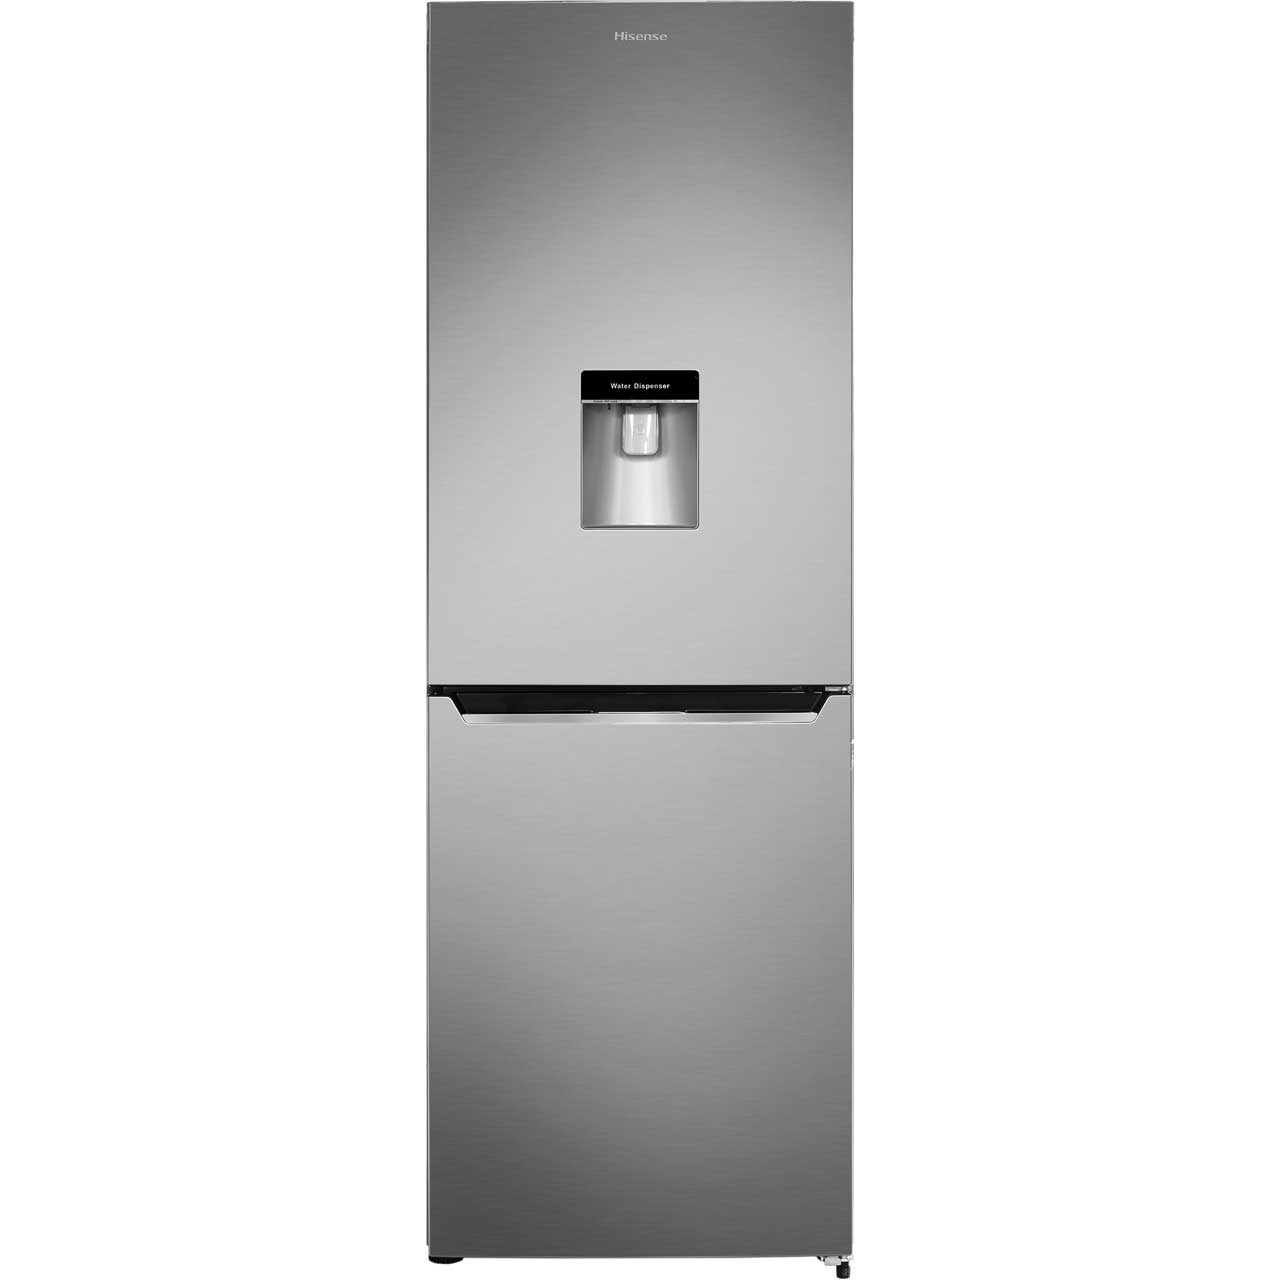 Hisense RB367N4WC1 Free Standing Fridge Freezer Frost Free in Stainless Steel Look